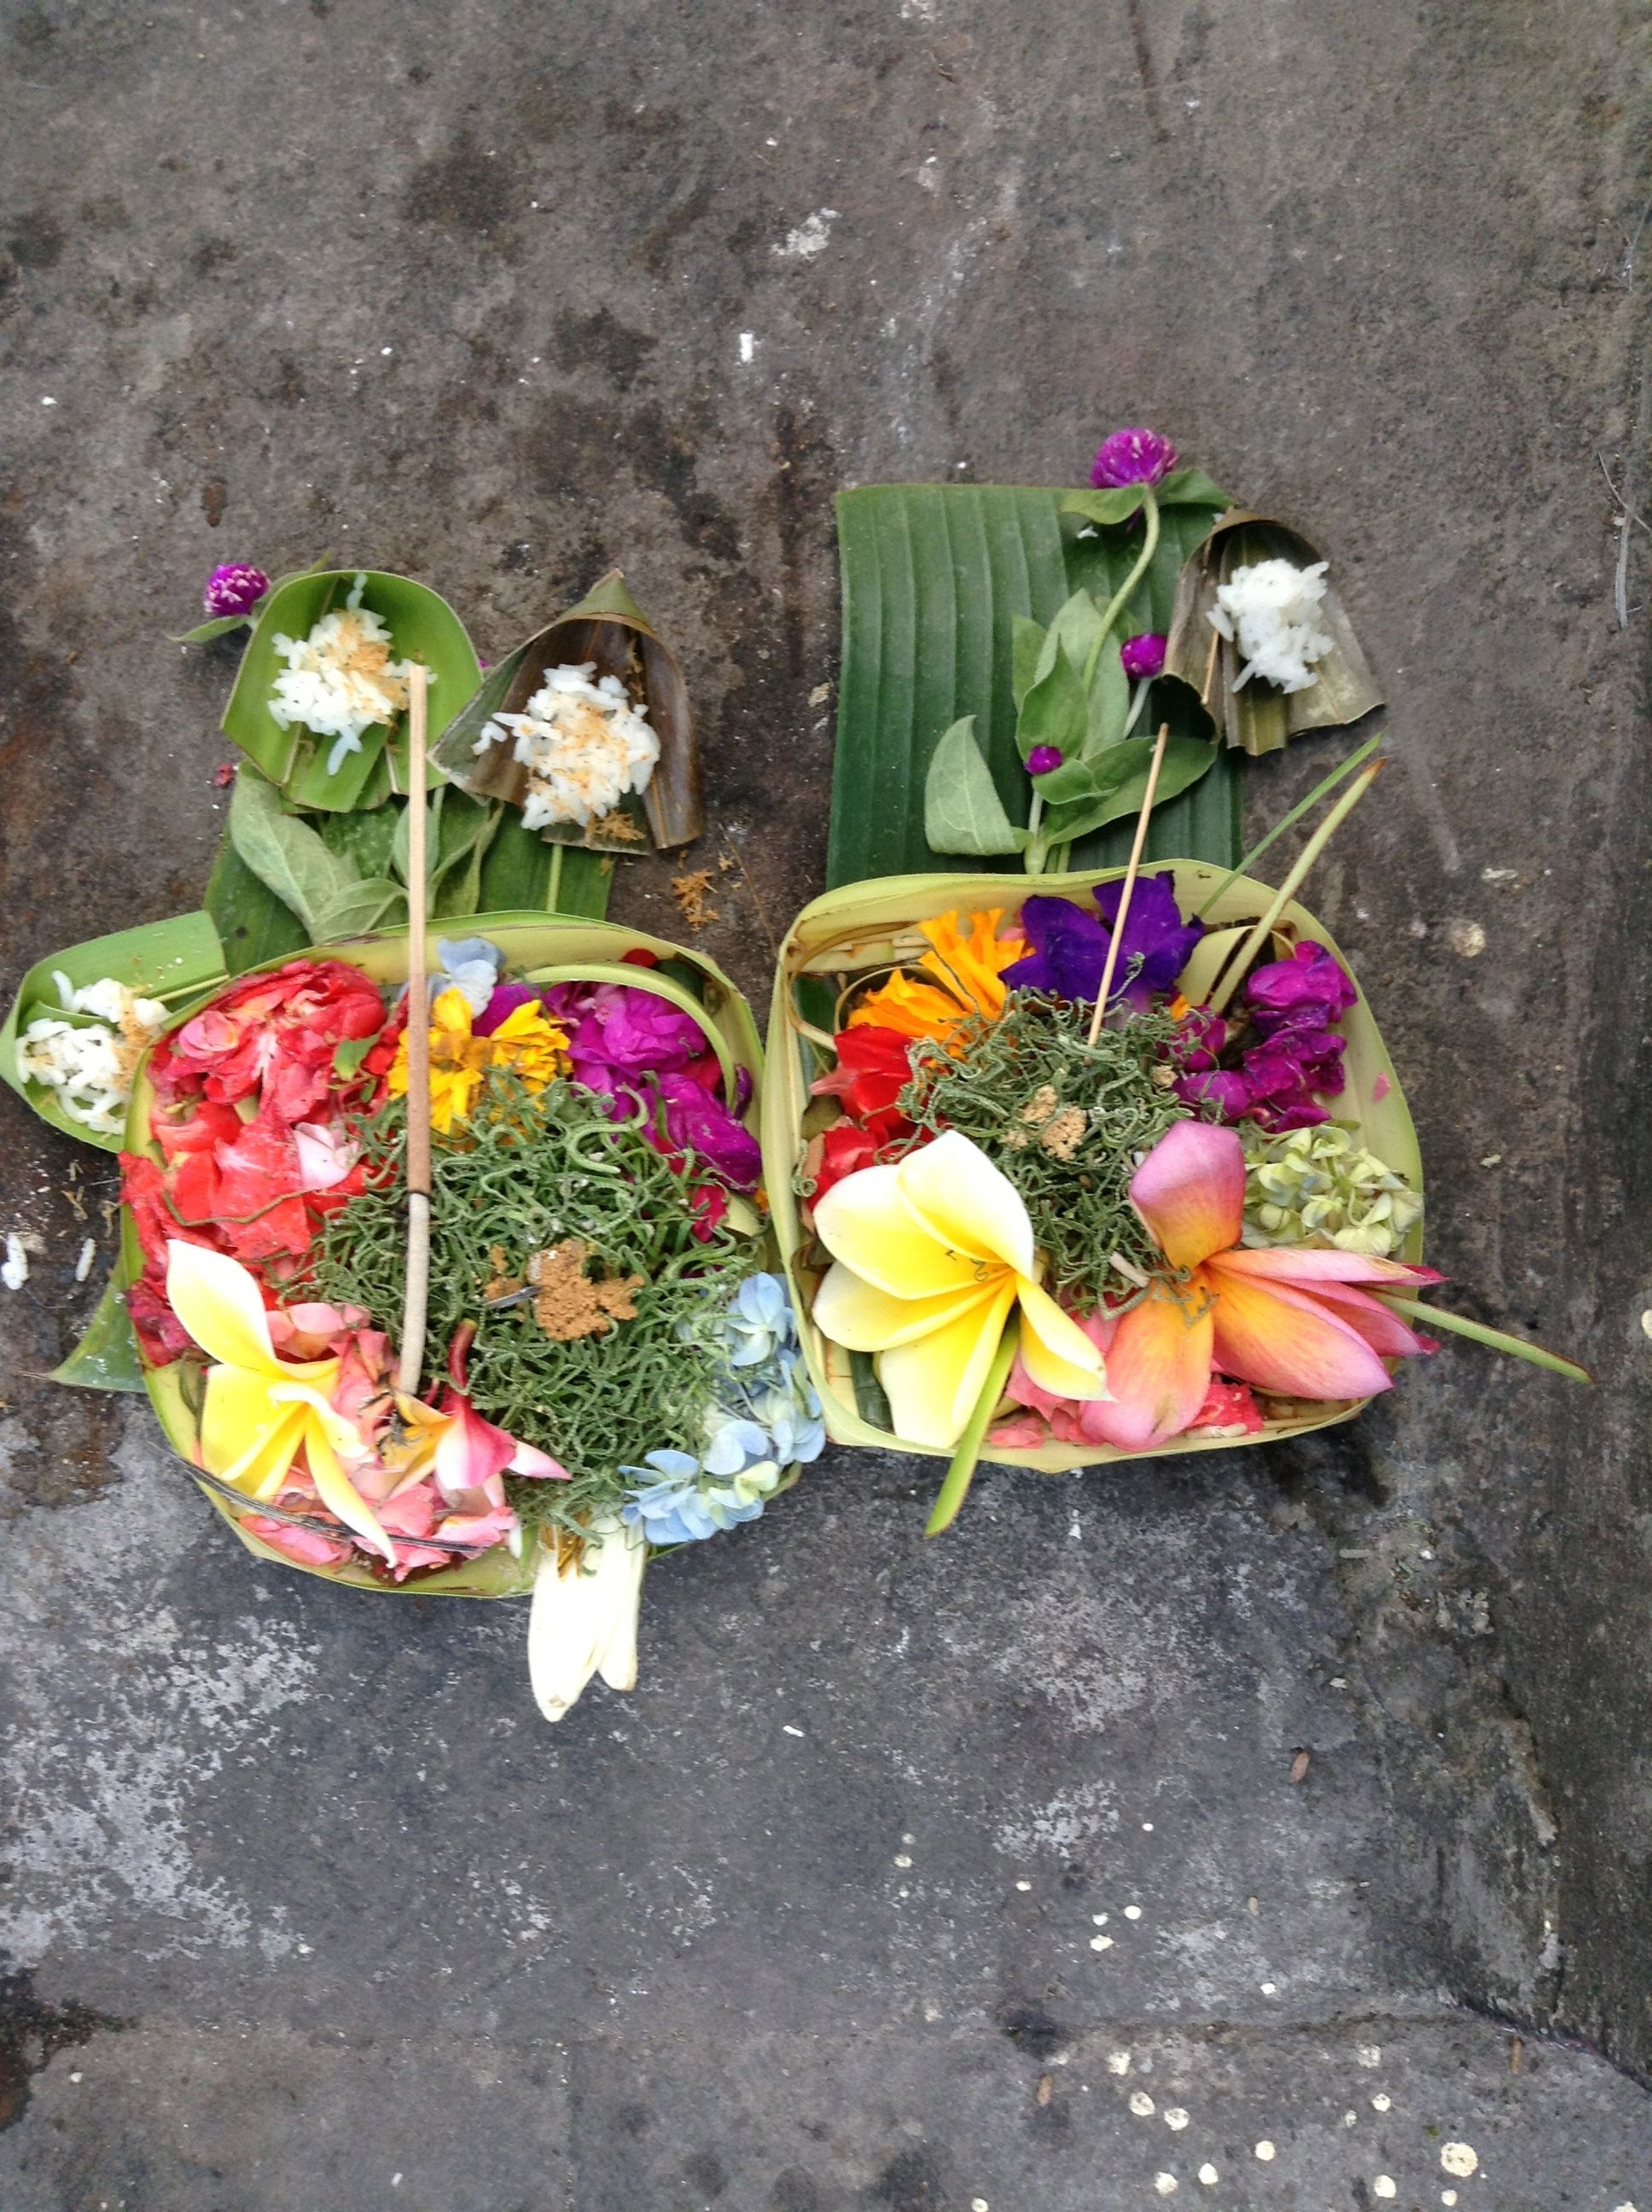 These Balinese offerings are throughout all the streets in Bali, Indonesia.